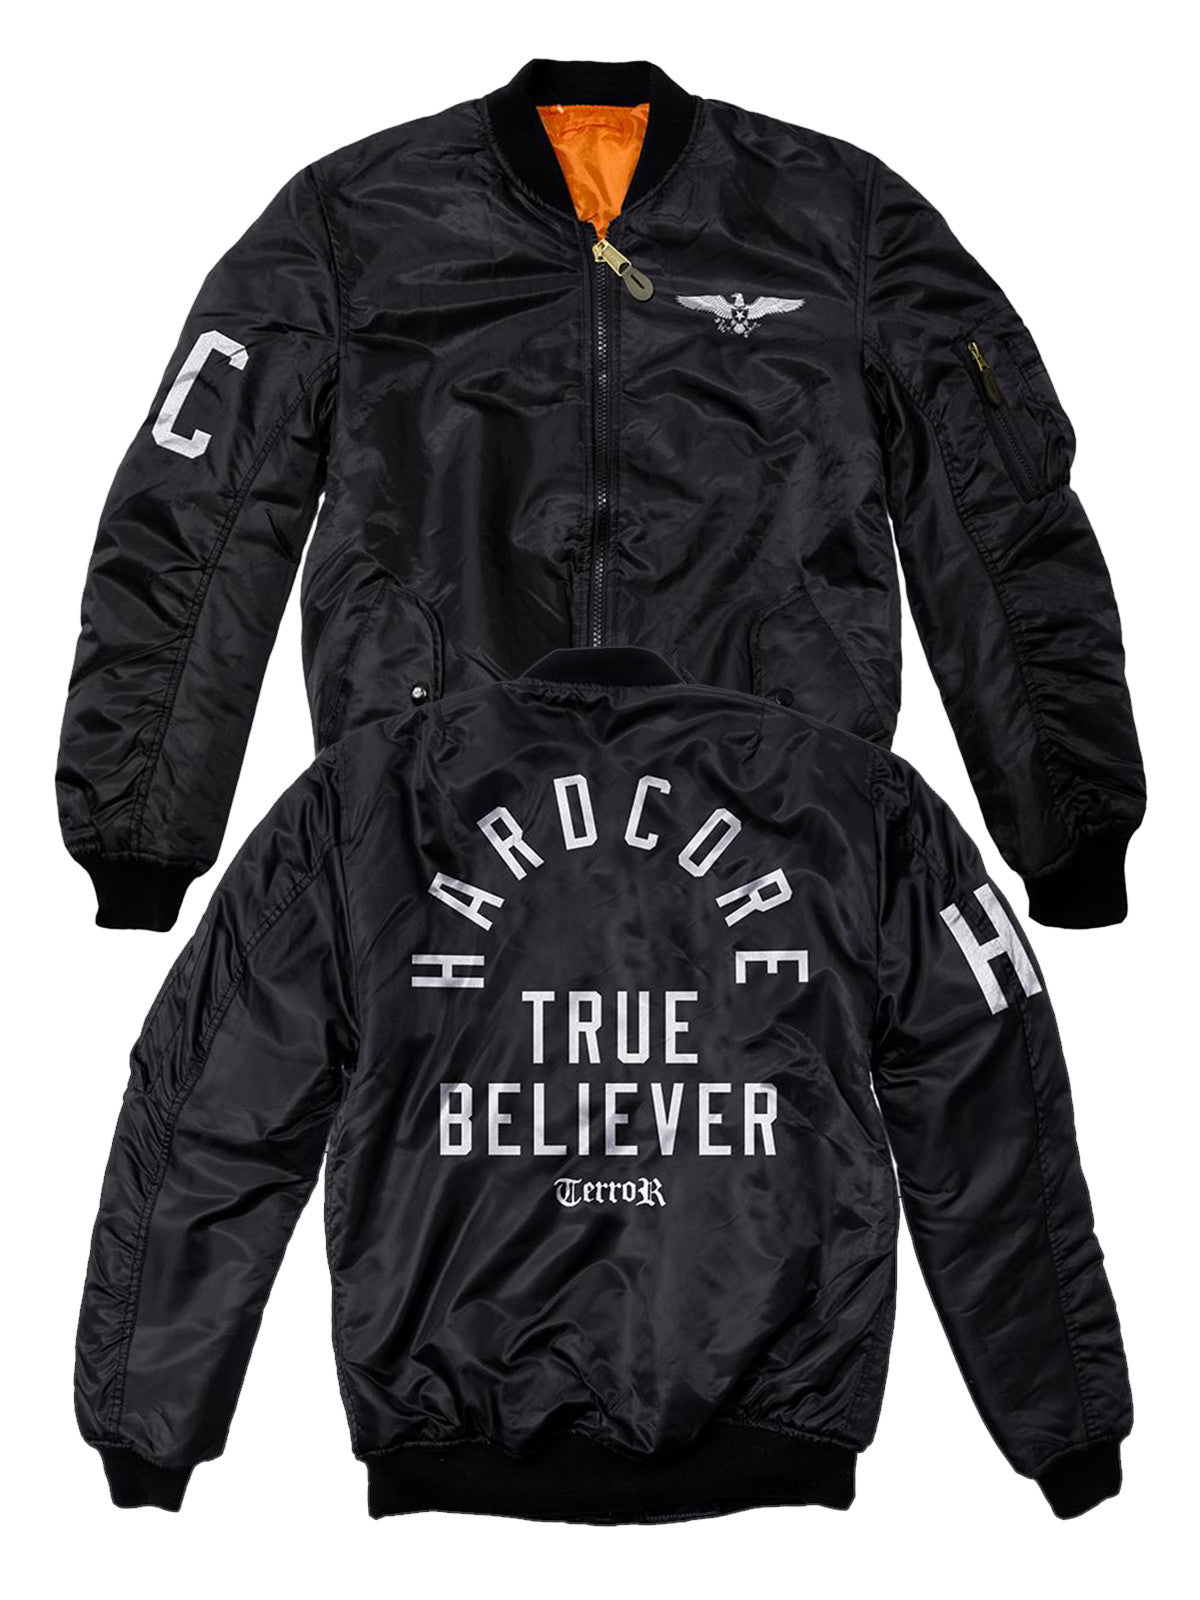 Terror - HC Bomber Jacket - Merch Limited